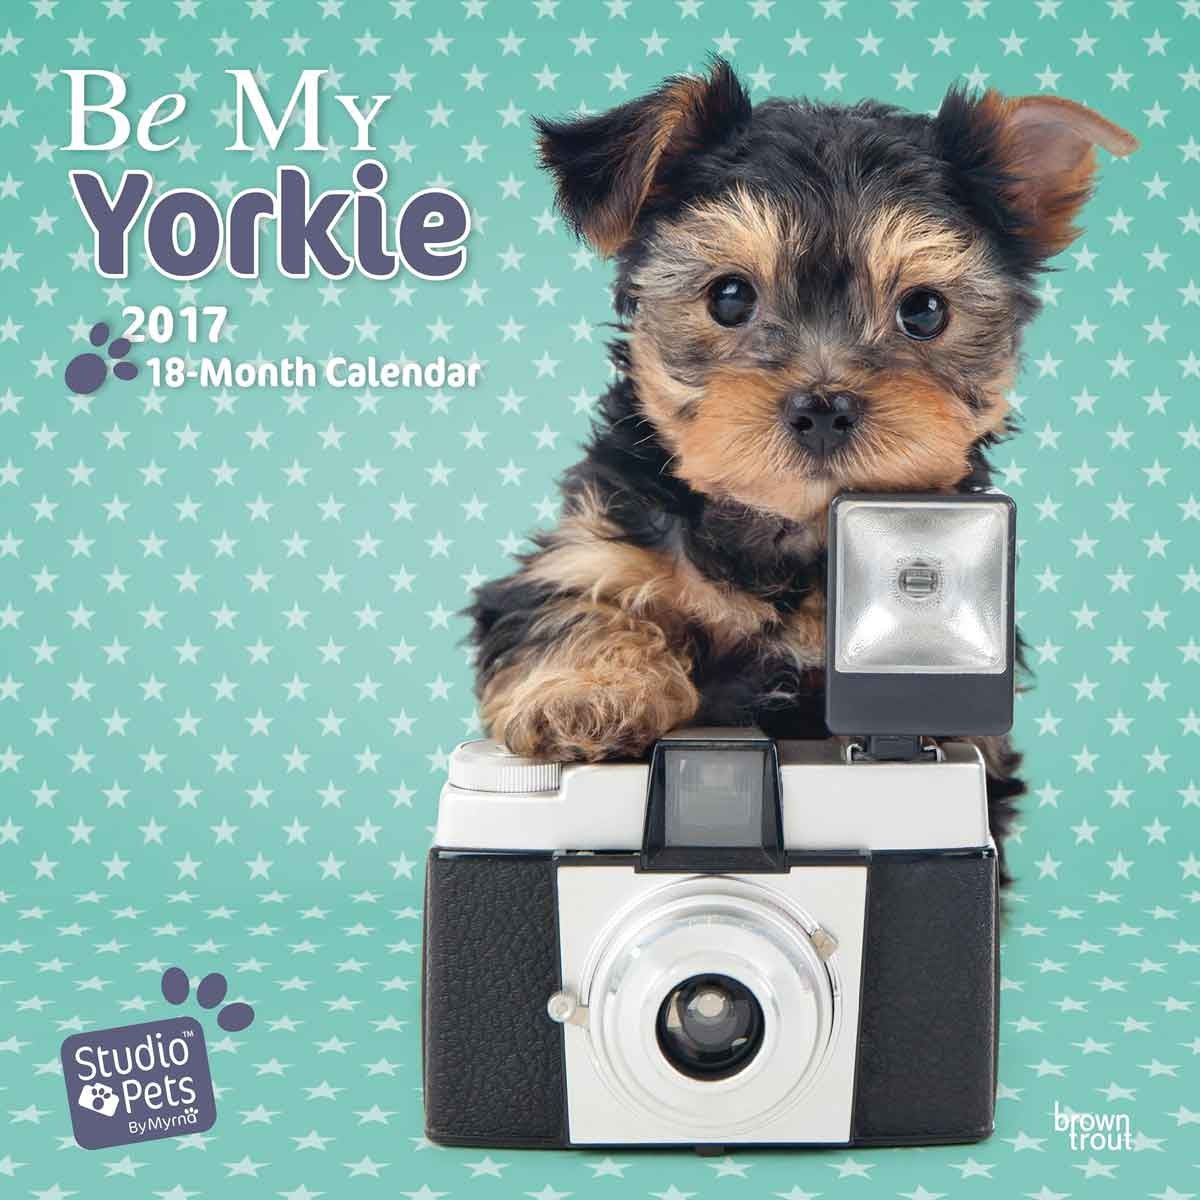 Be My Yorkie - Calendars 2019 on UKposters/Abposters.com